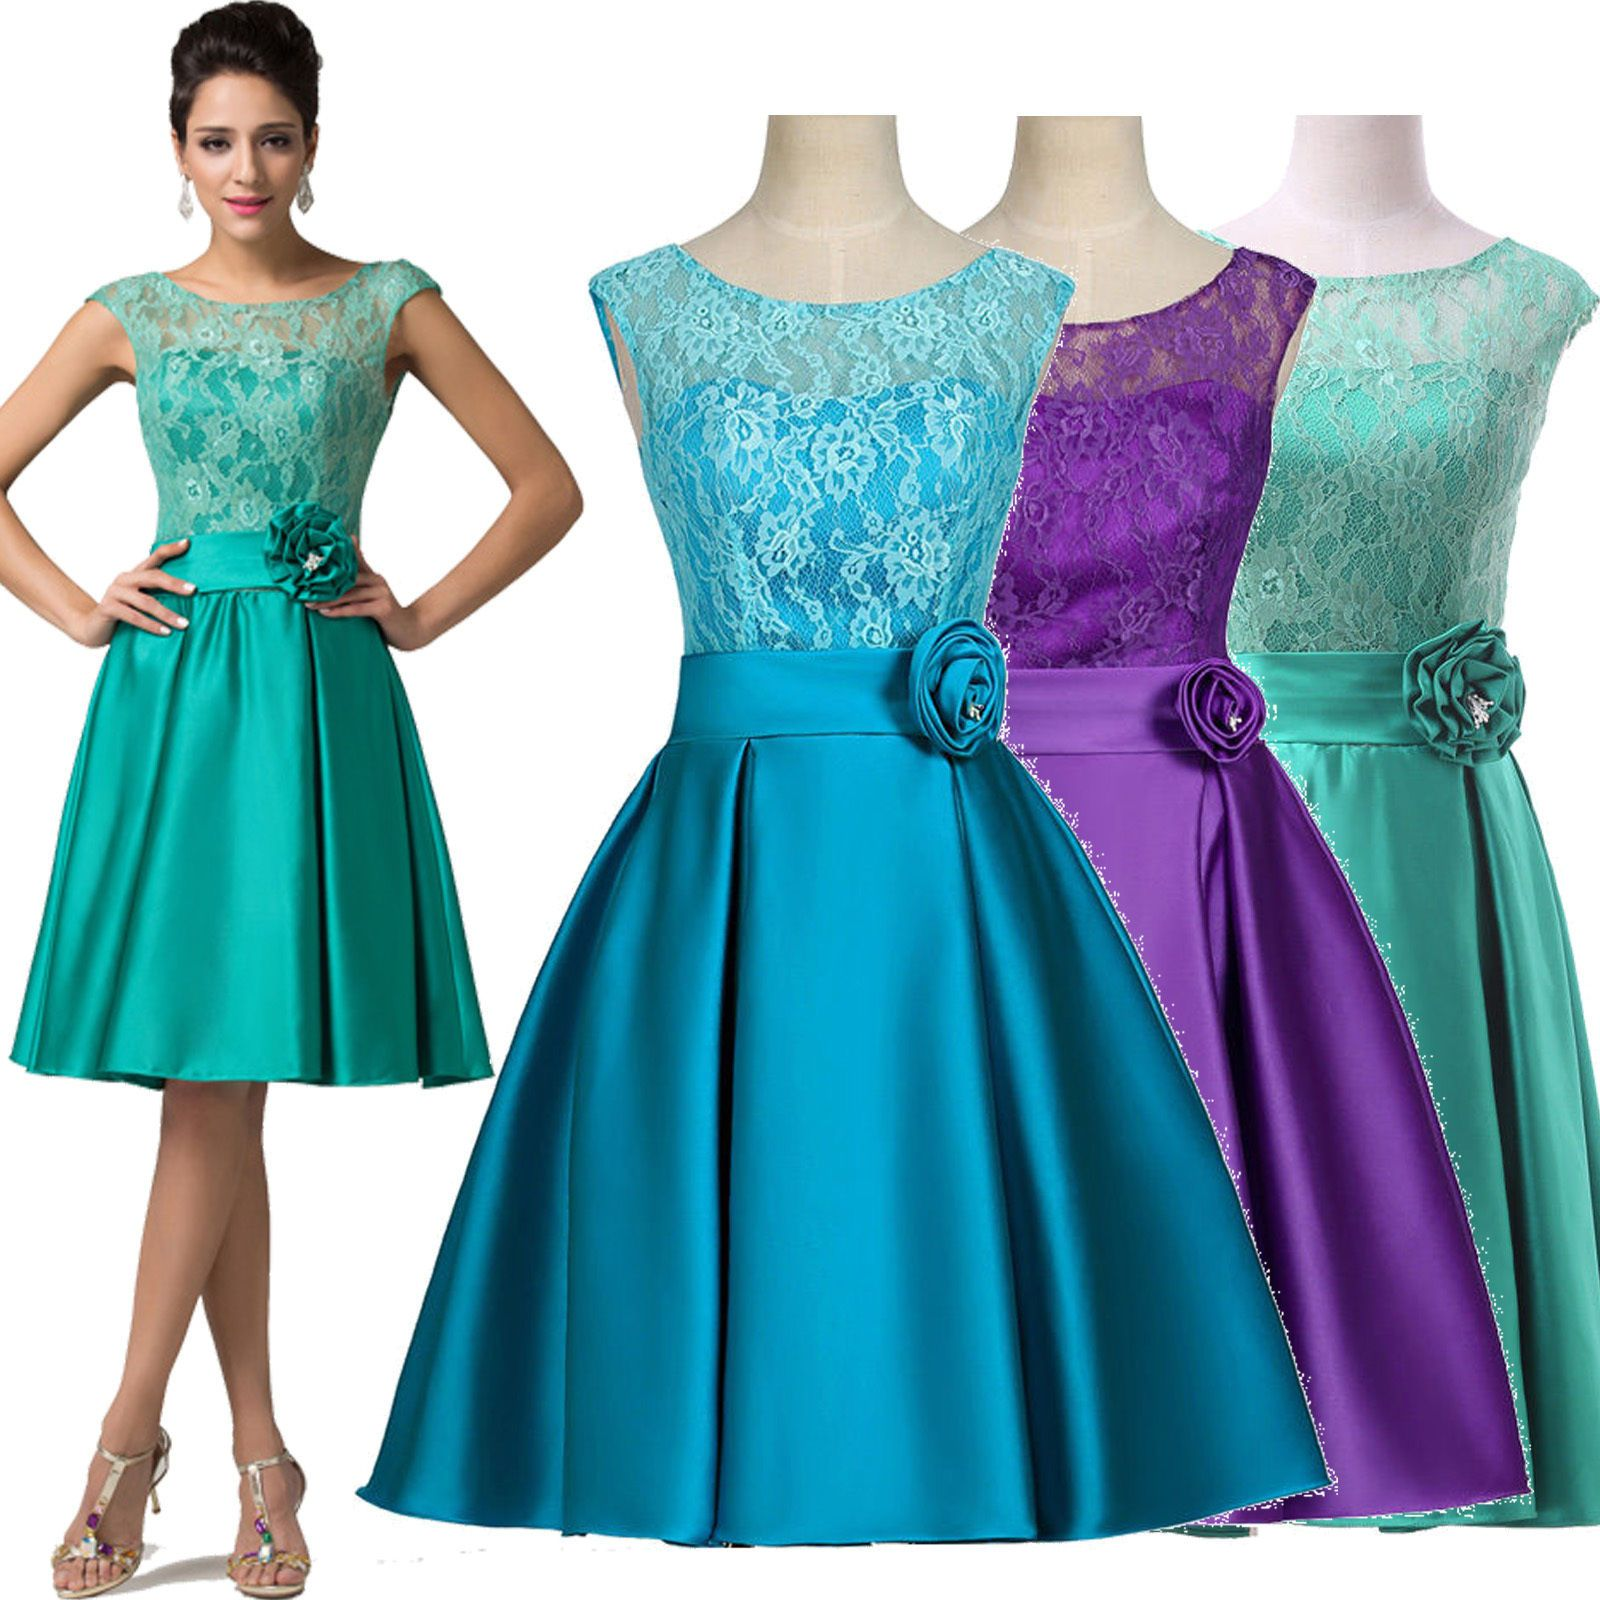 Lace short homecoming dress prom party cocktail dress graduation